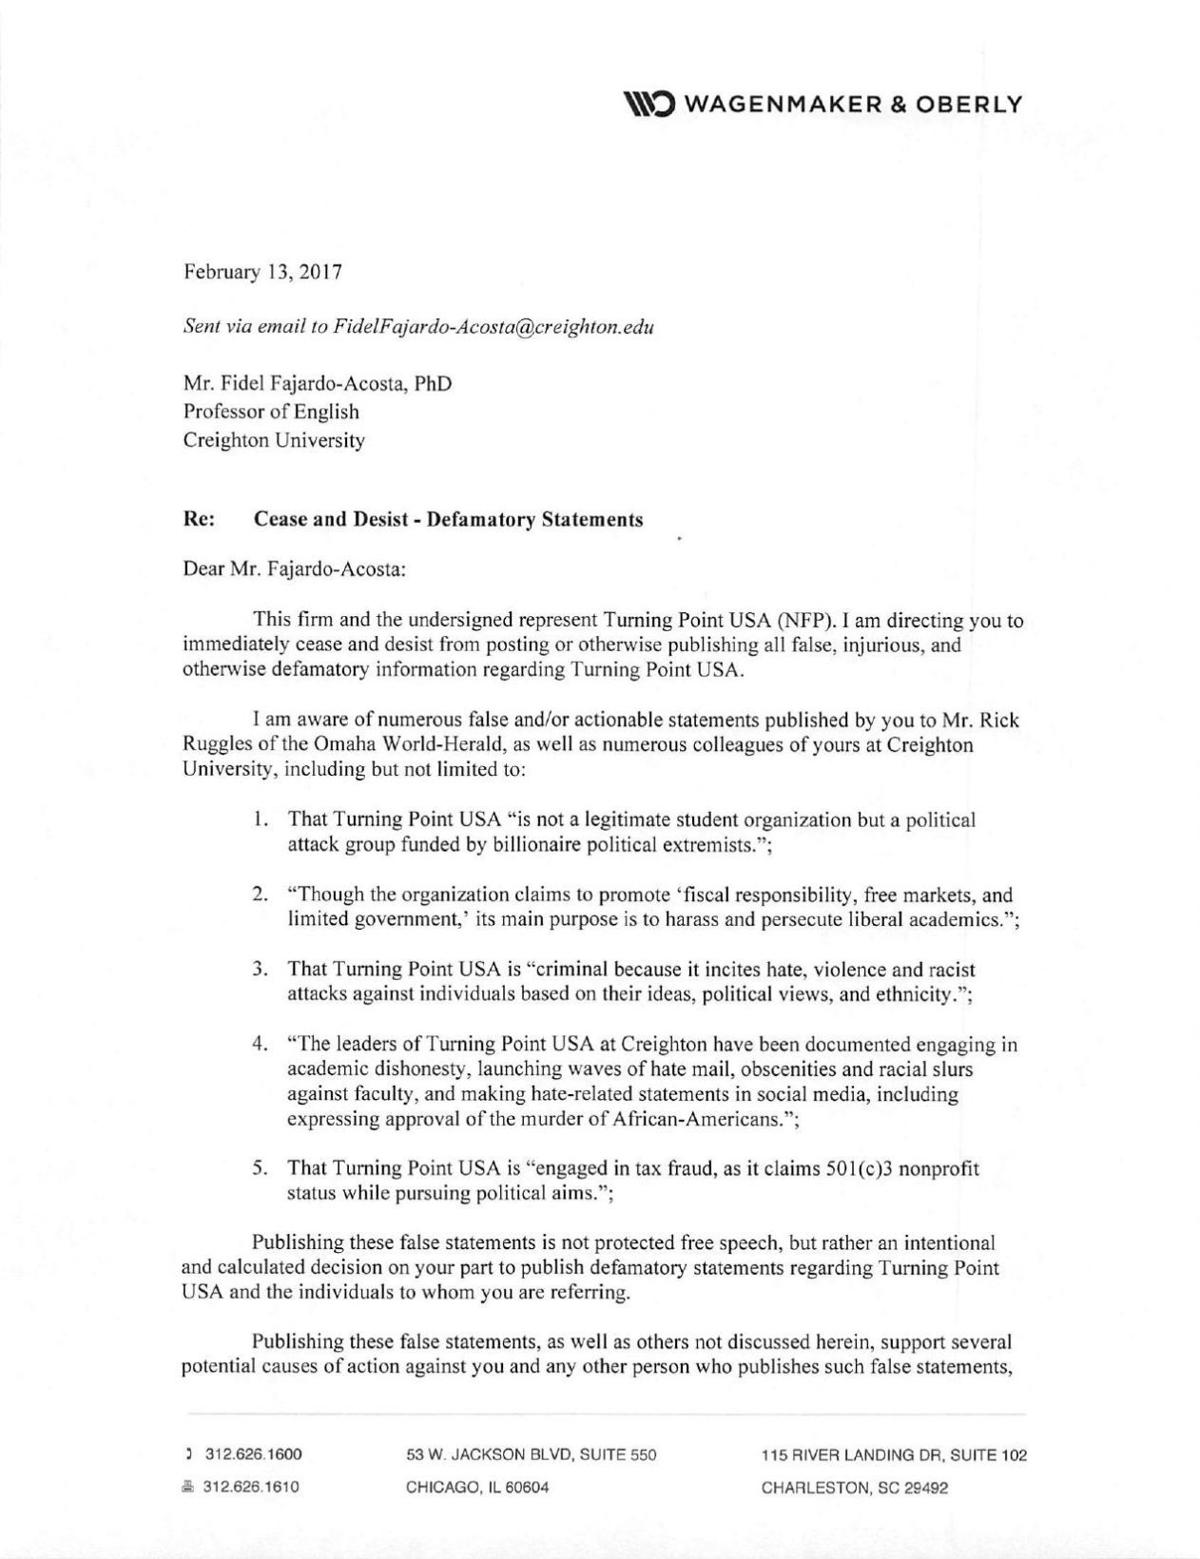 Cease And Desist Letter Harassment from bloximages.chicago2.vip.townnews.com